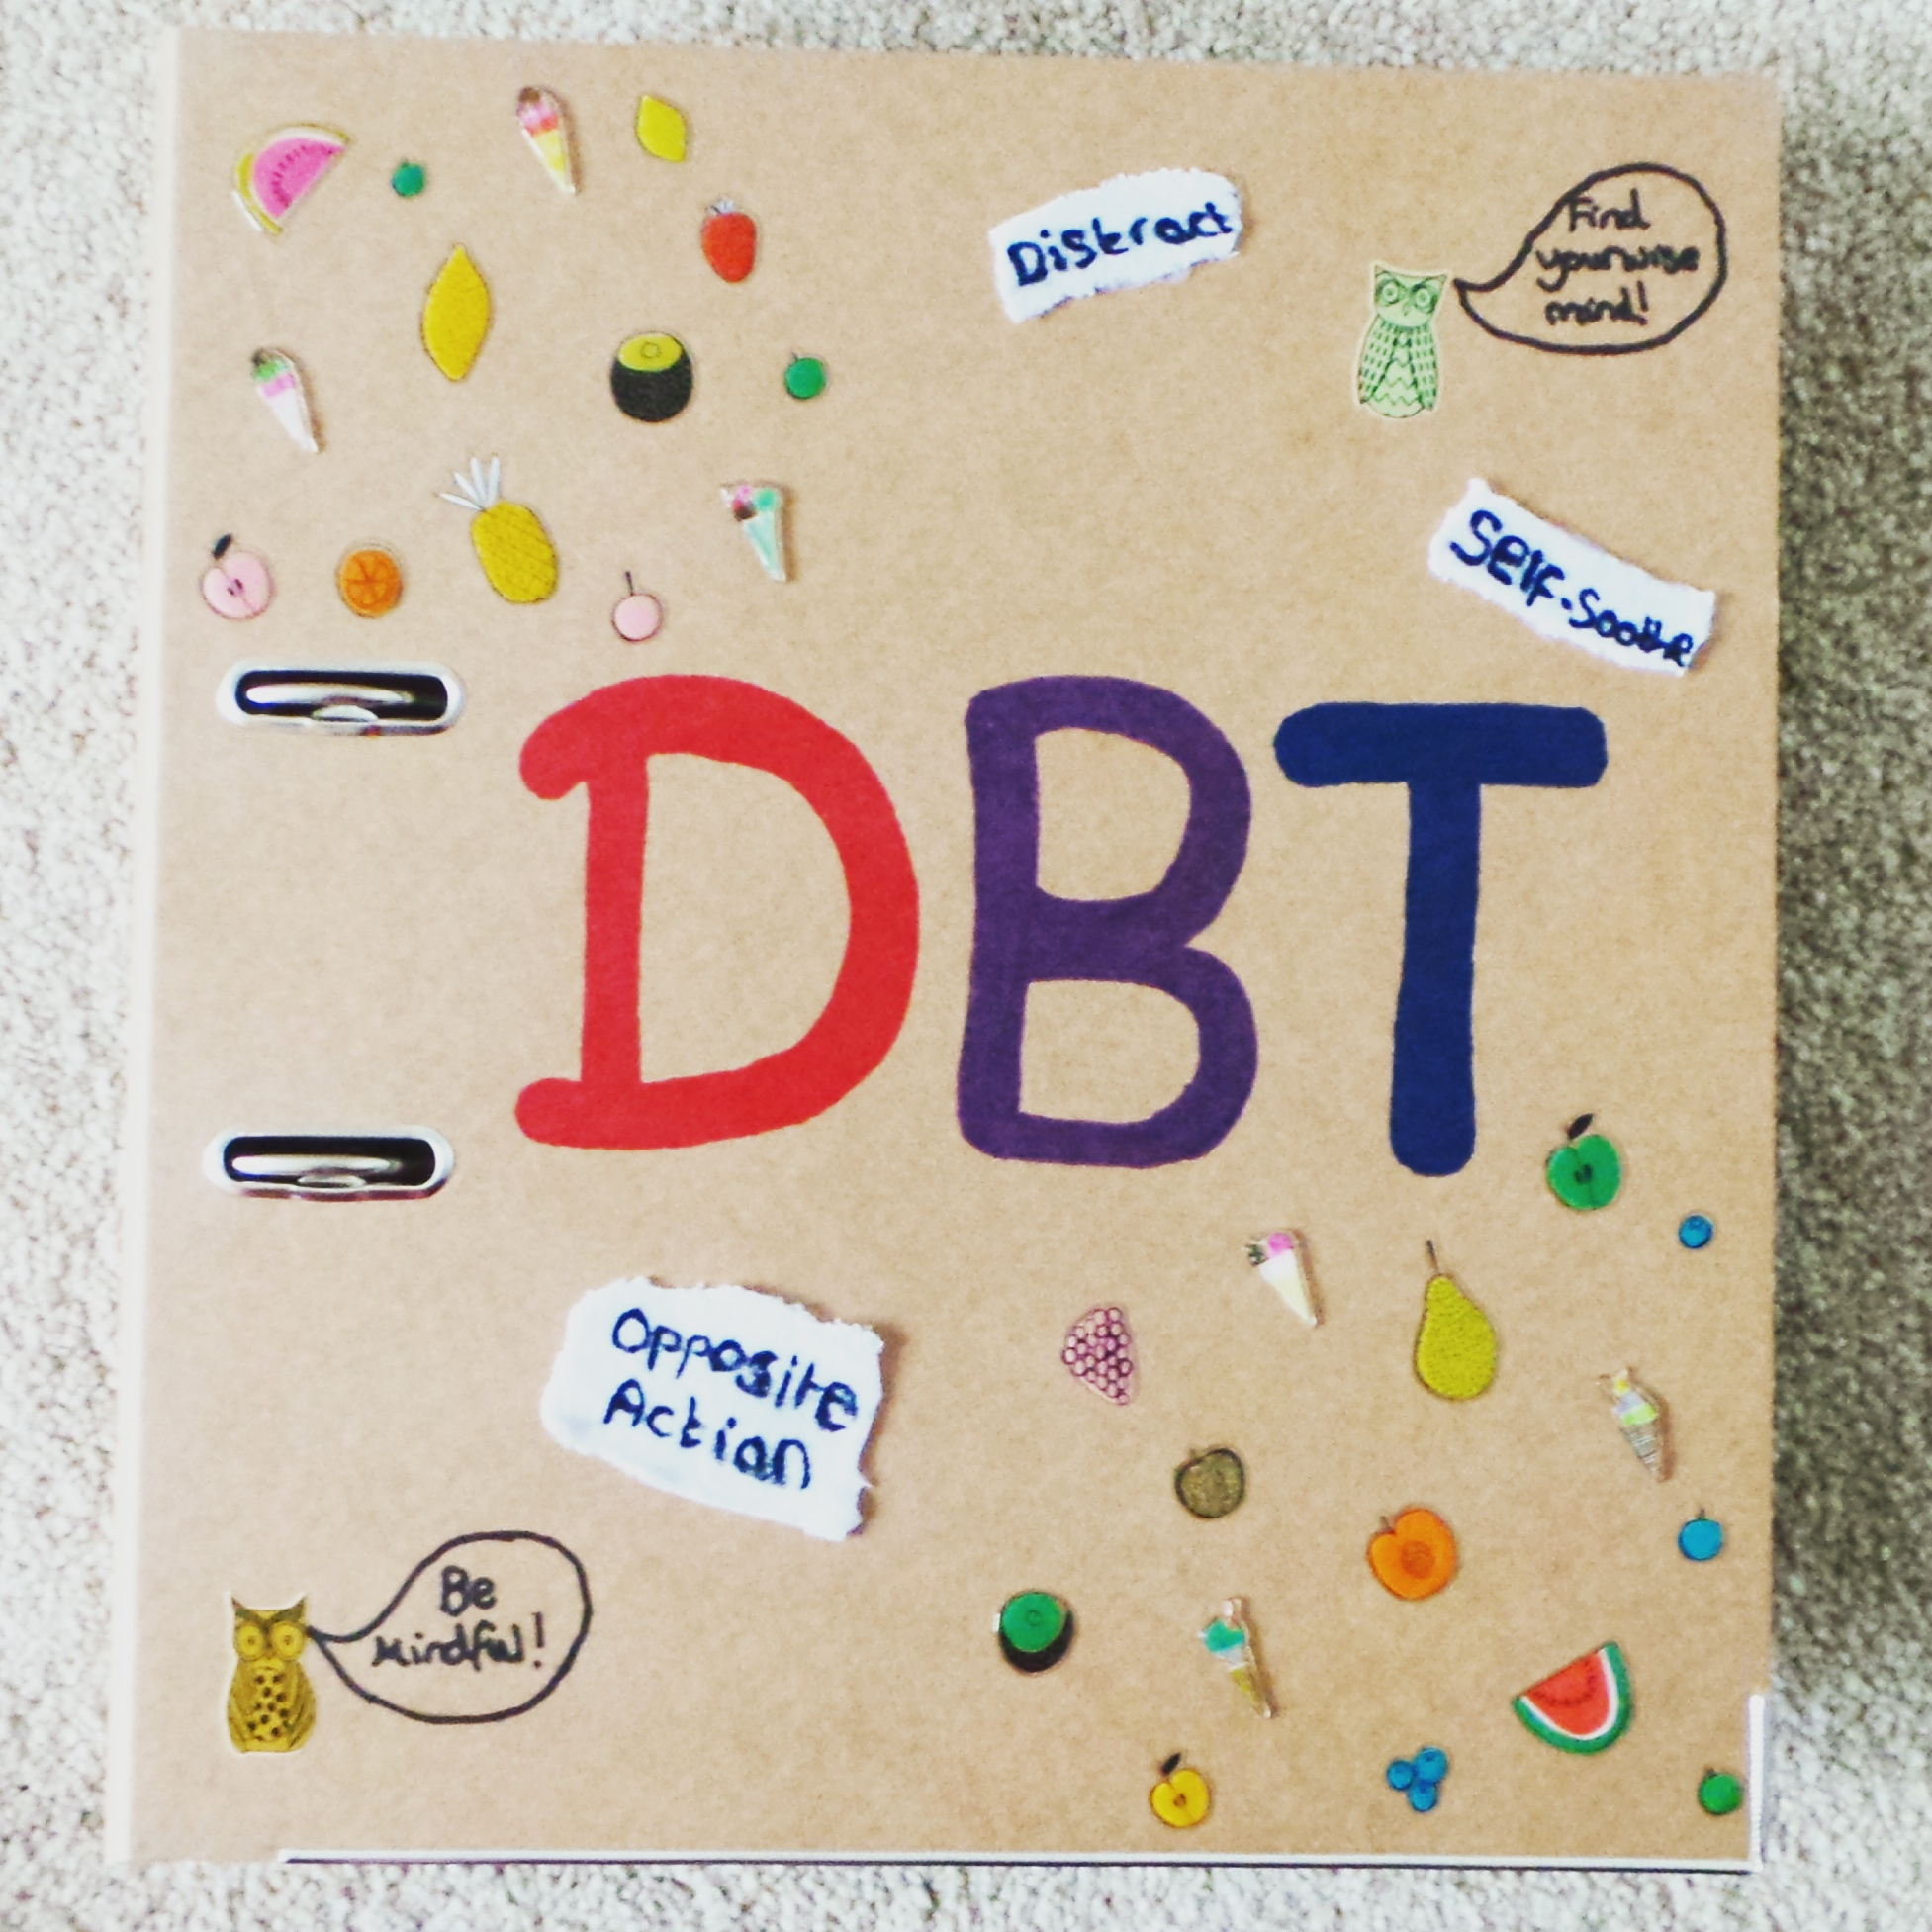 Dbt What Is It And How Has It Helped Me